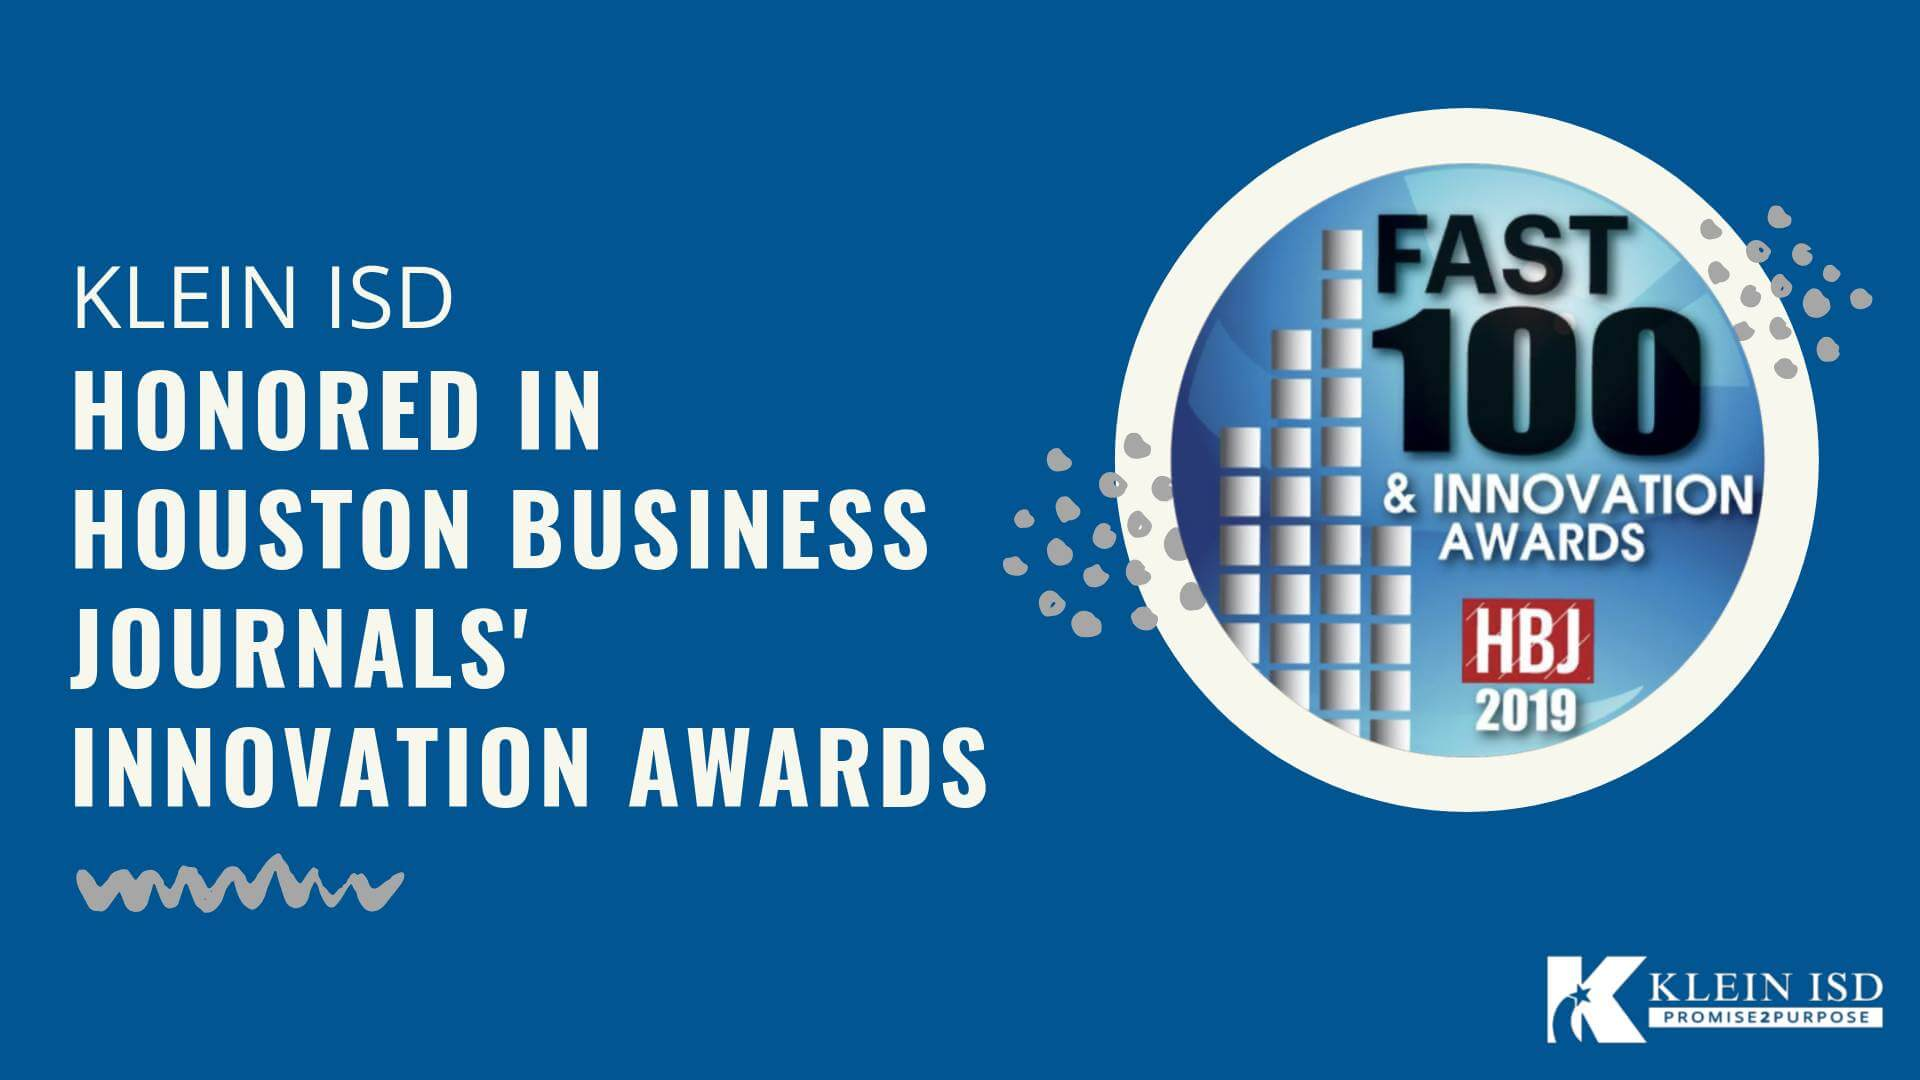 Klein ISD Honored in Houston Business Journal's Innovation Awards